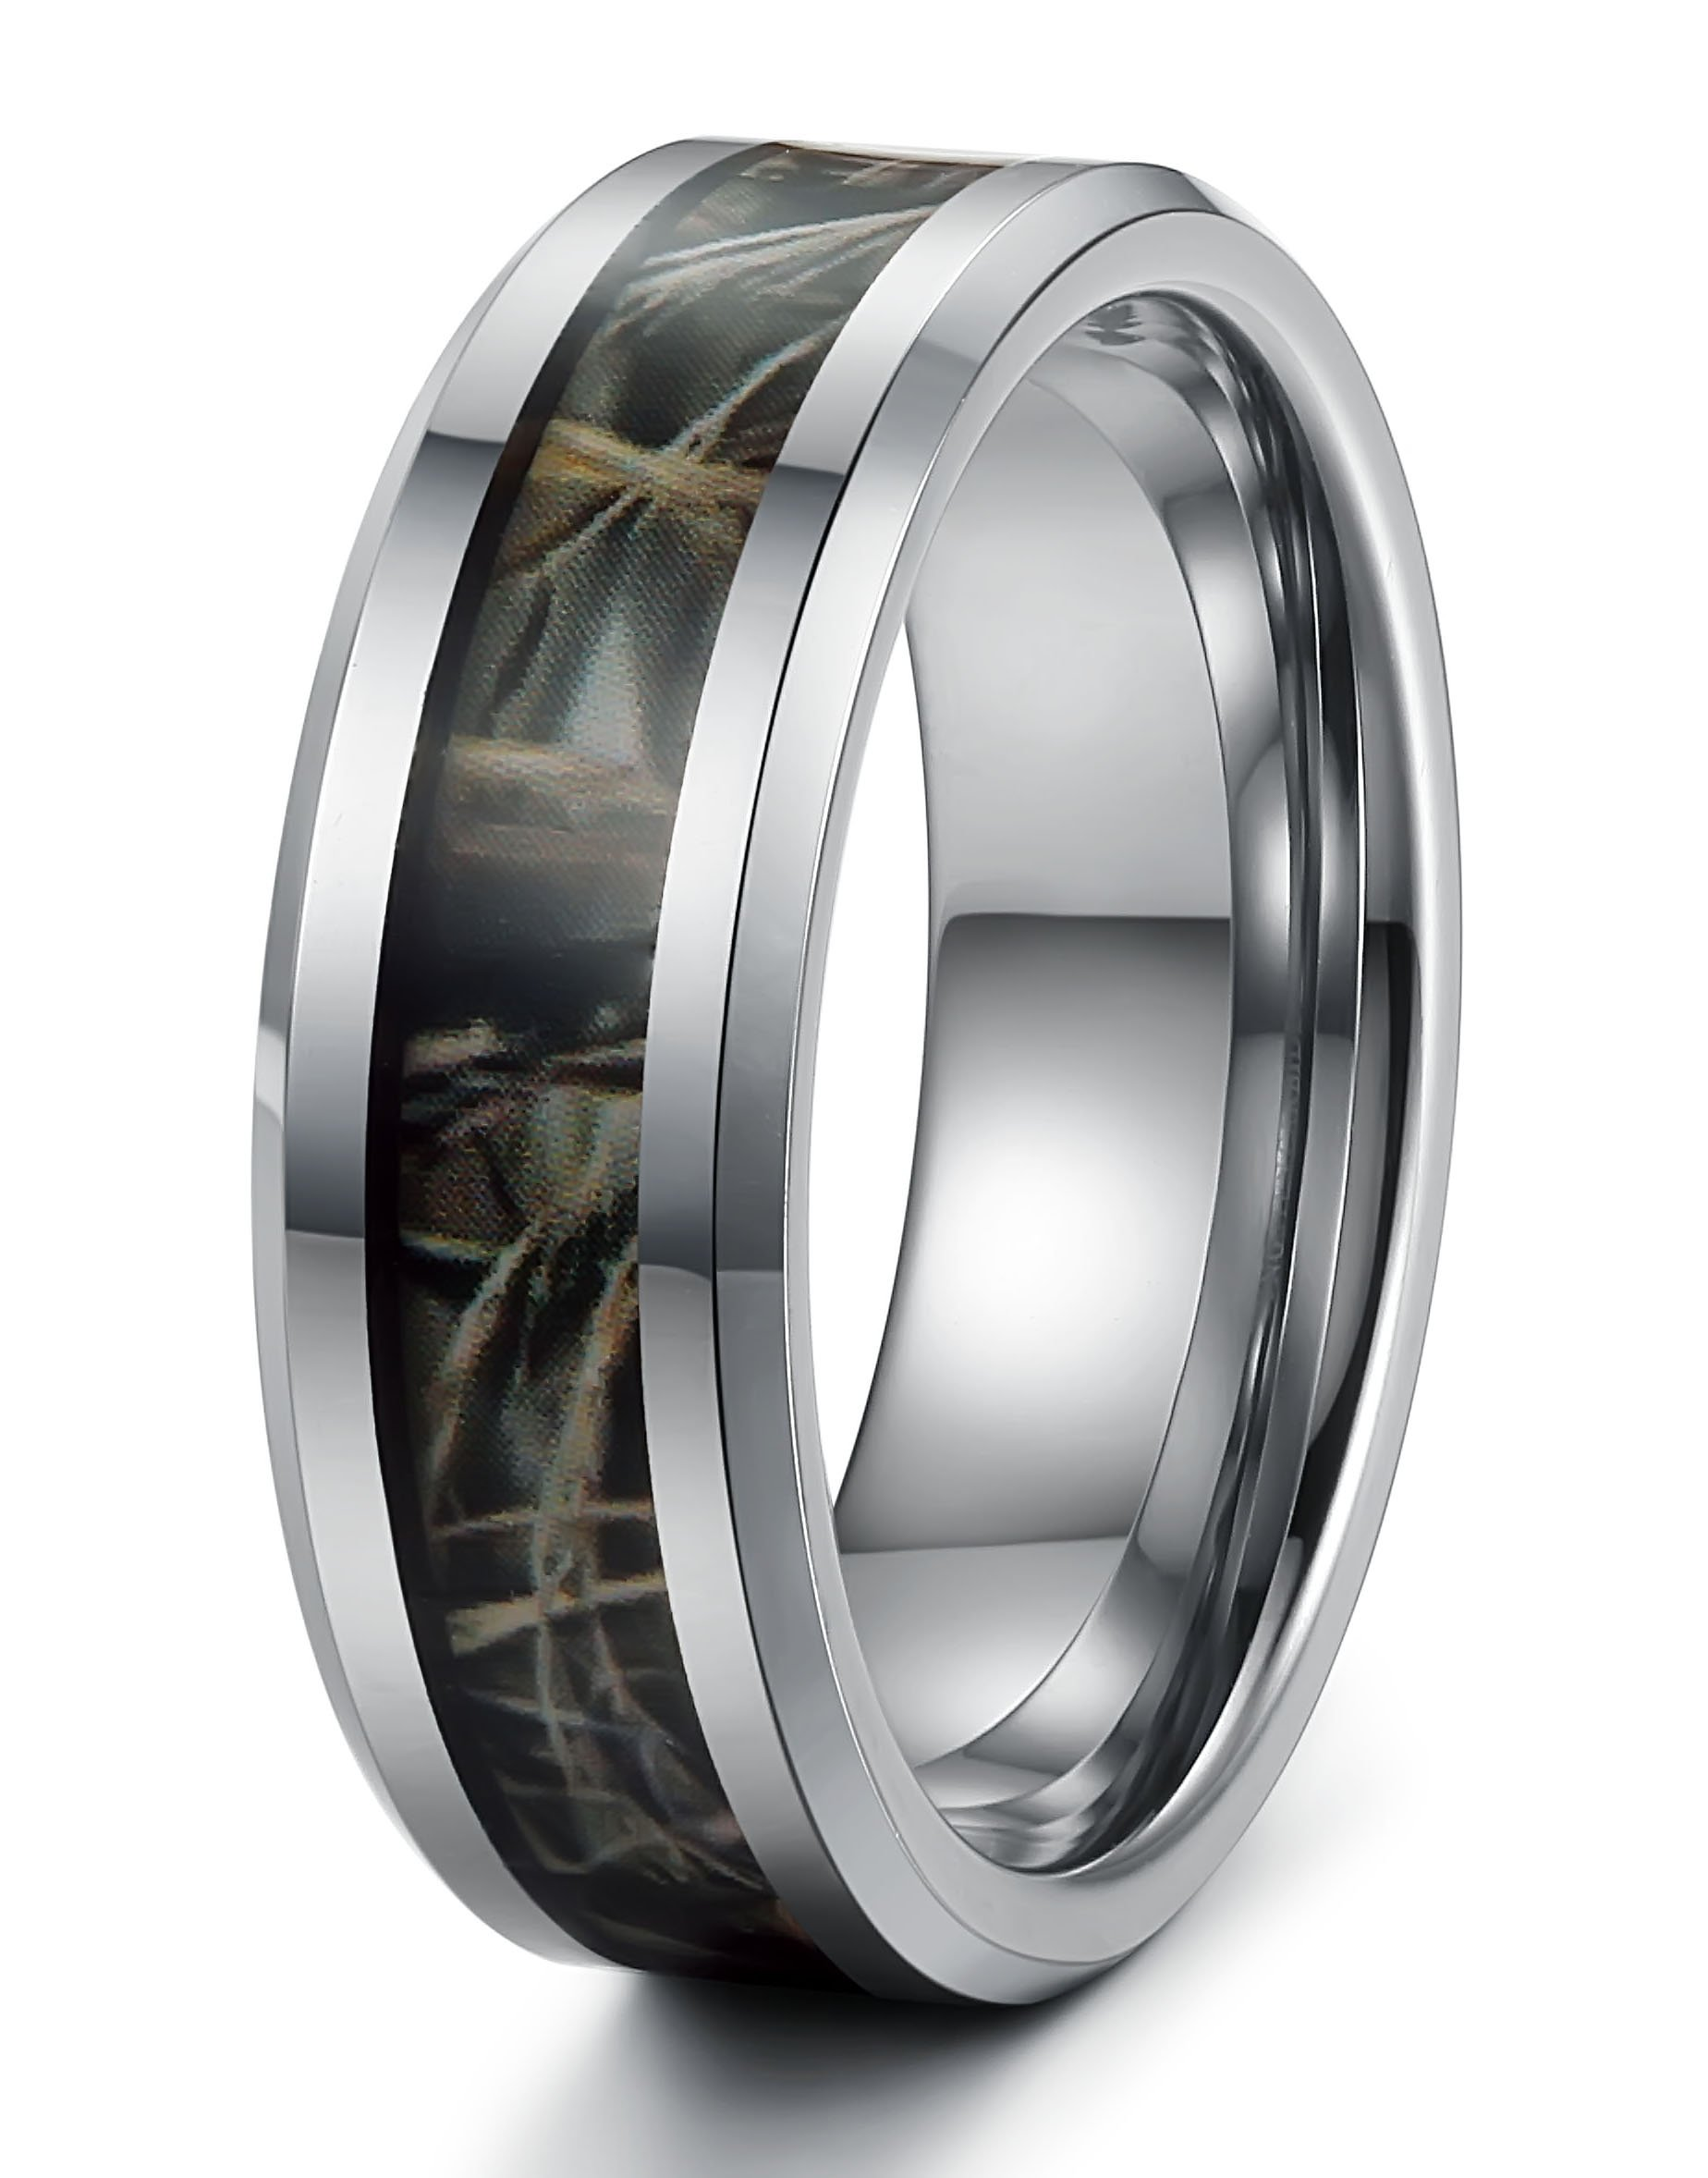 Tungary Jewelry 8mm Mens Tungsten Carbide Rings Wedding Engagement Band Camo Size 12.5